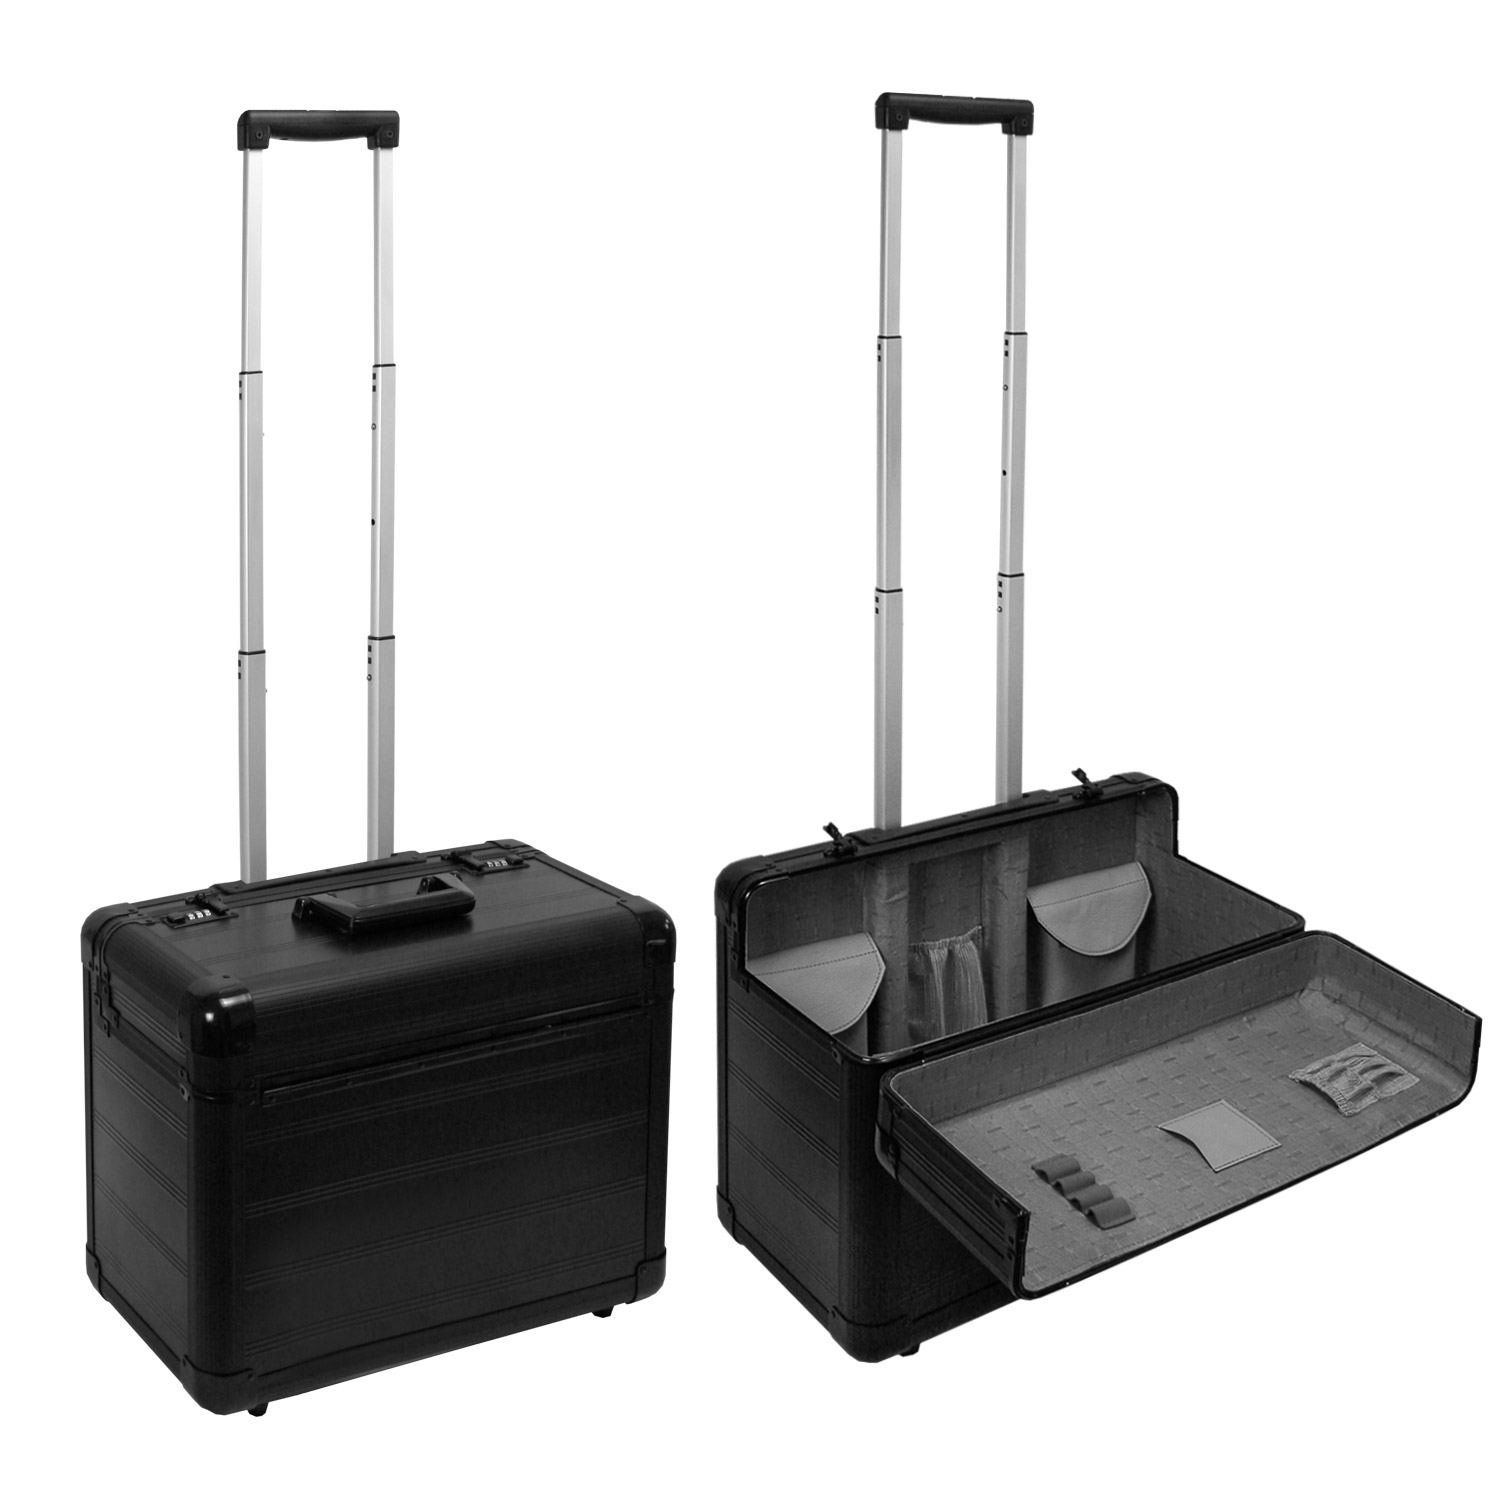 pilotenkoffer rollen aktenkoffer business trolley schwarz ca 48 x 36 x 25 cm ebay. Black Bedroom Furniture Sets. Home Design Ideas